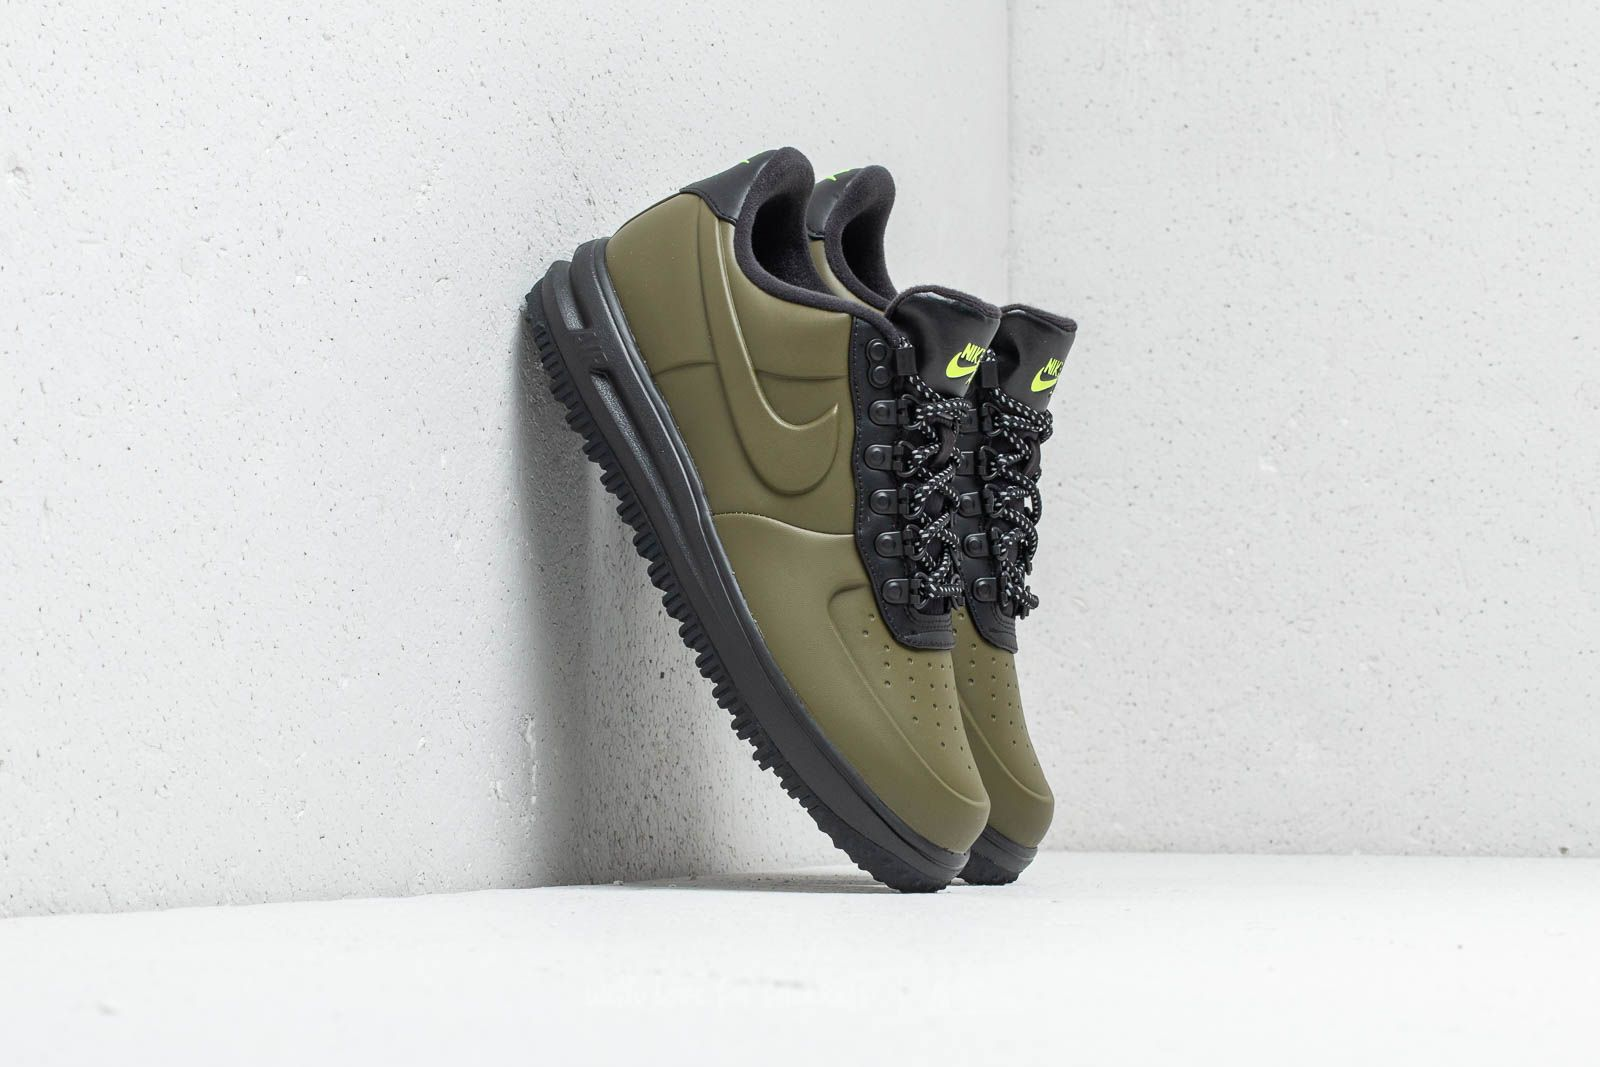 Nike Lunar Force 1 Duckboot Low Olive Canvas Olive Canvas | Footshop